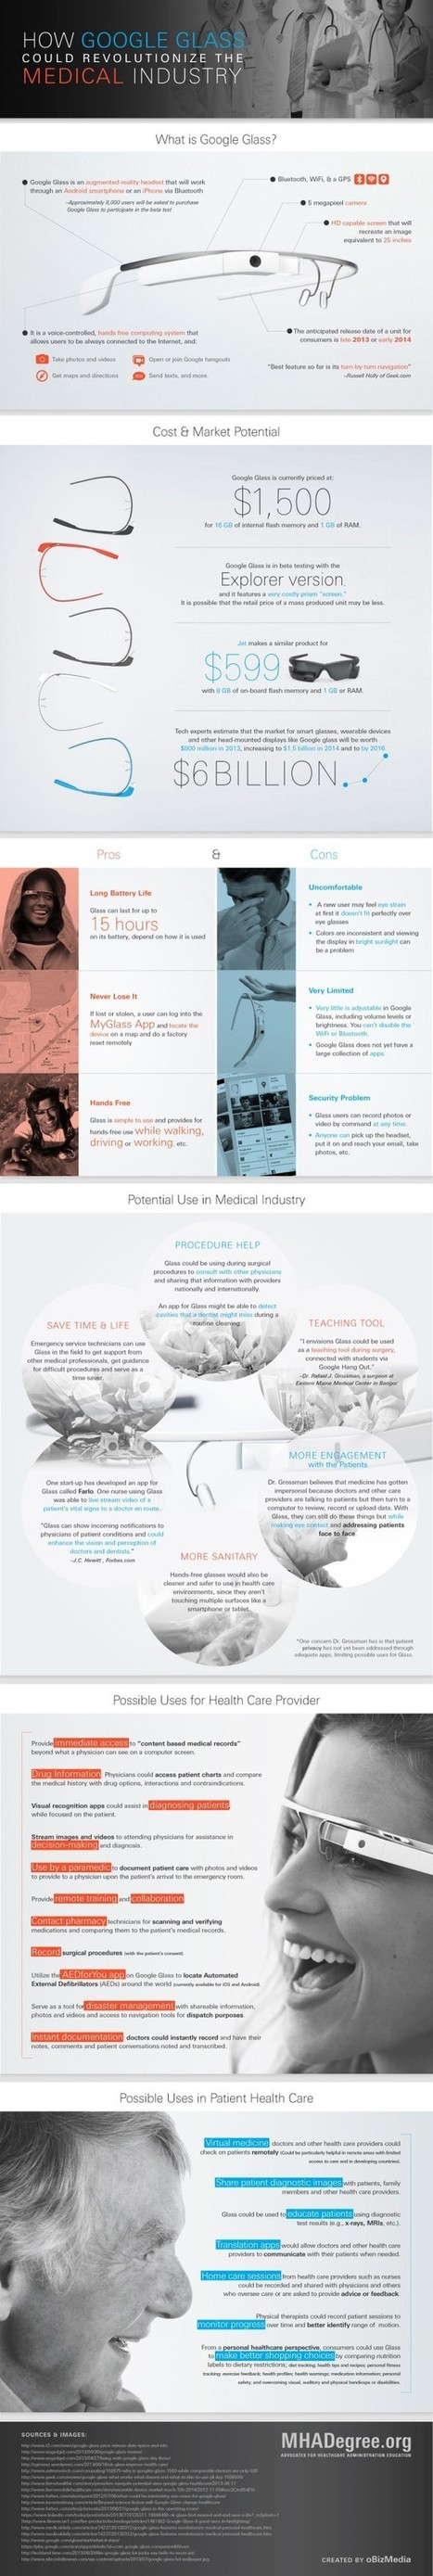 Google Glass: Not just another Gadget | Social Media, Marketing and Promotion | Scoop.it